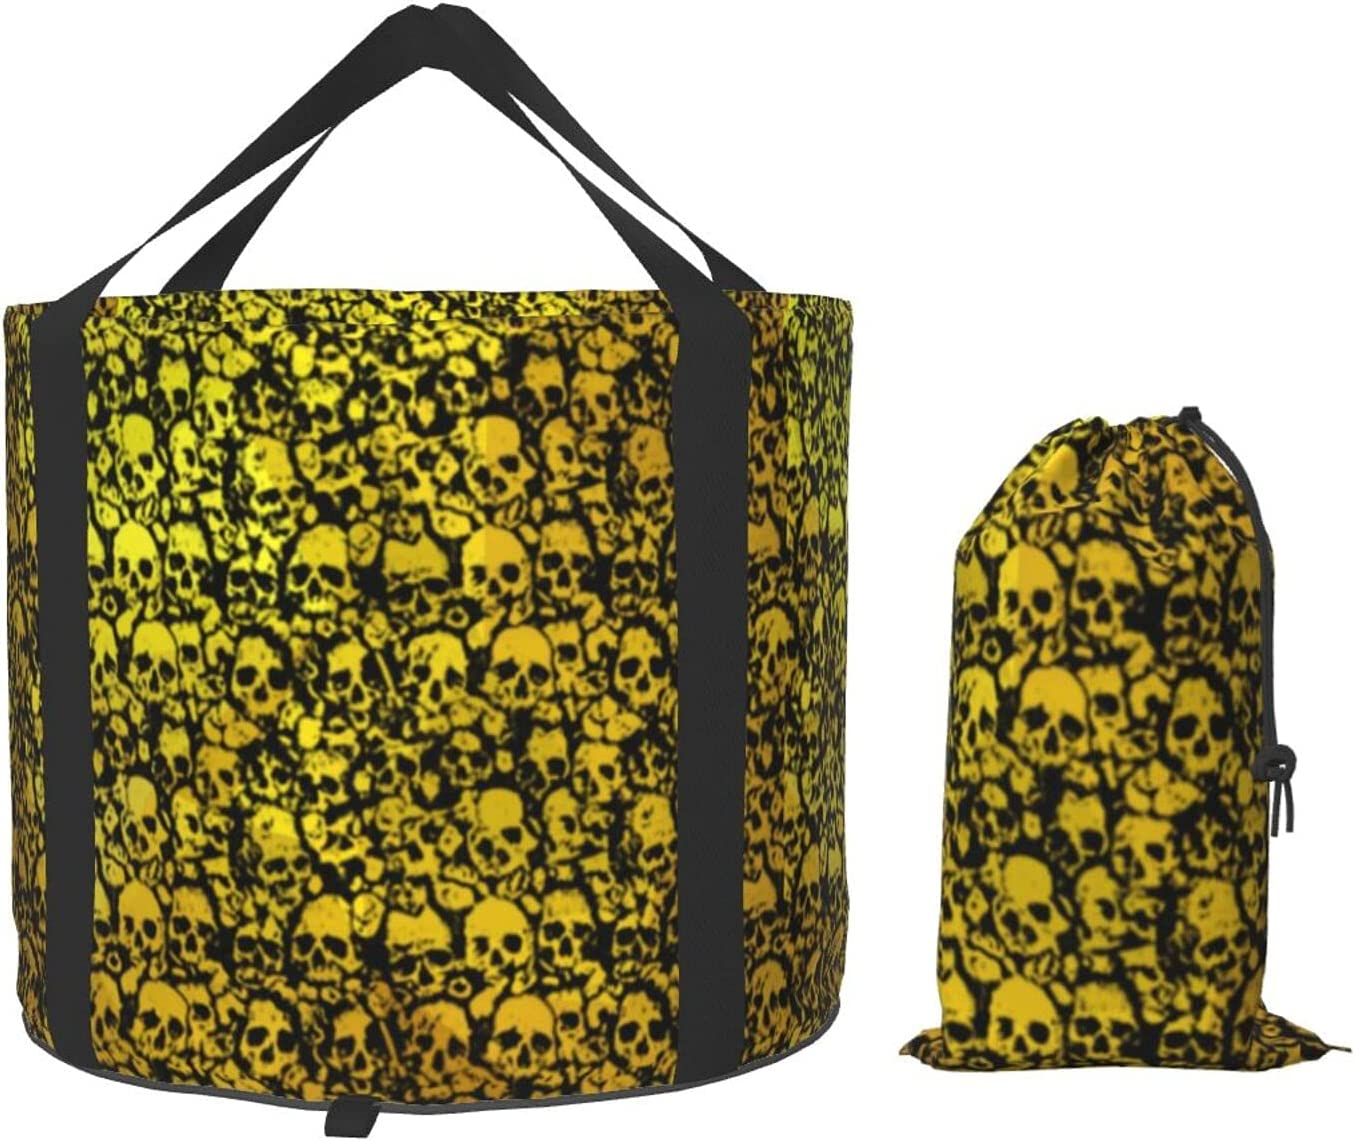 2021 autumn and winter new Multifunctional Portable Collapsible Bucket Skull Hall Gold Wall Store